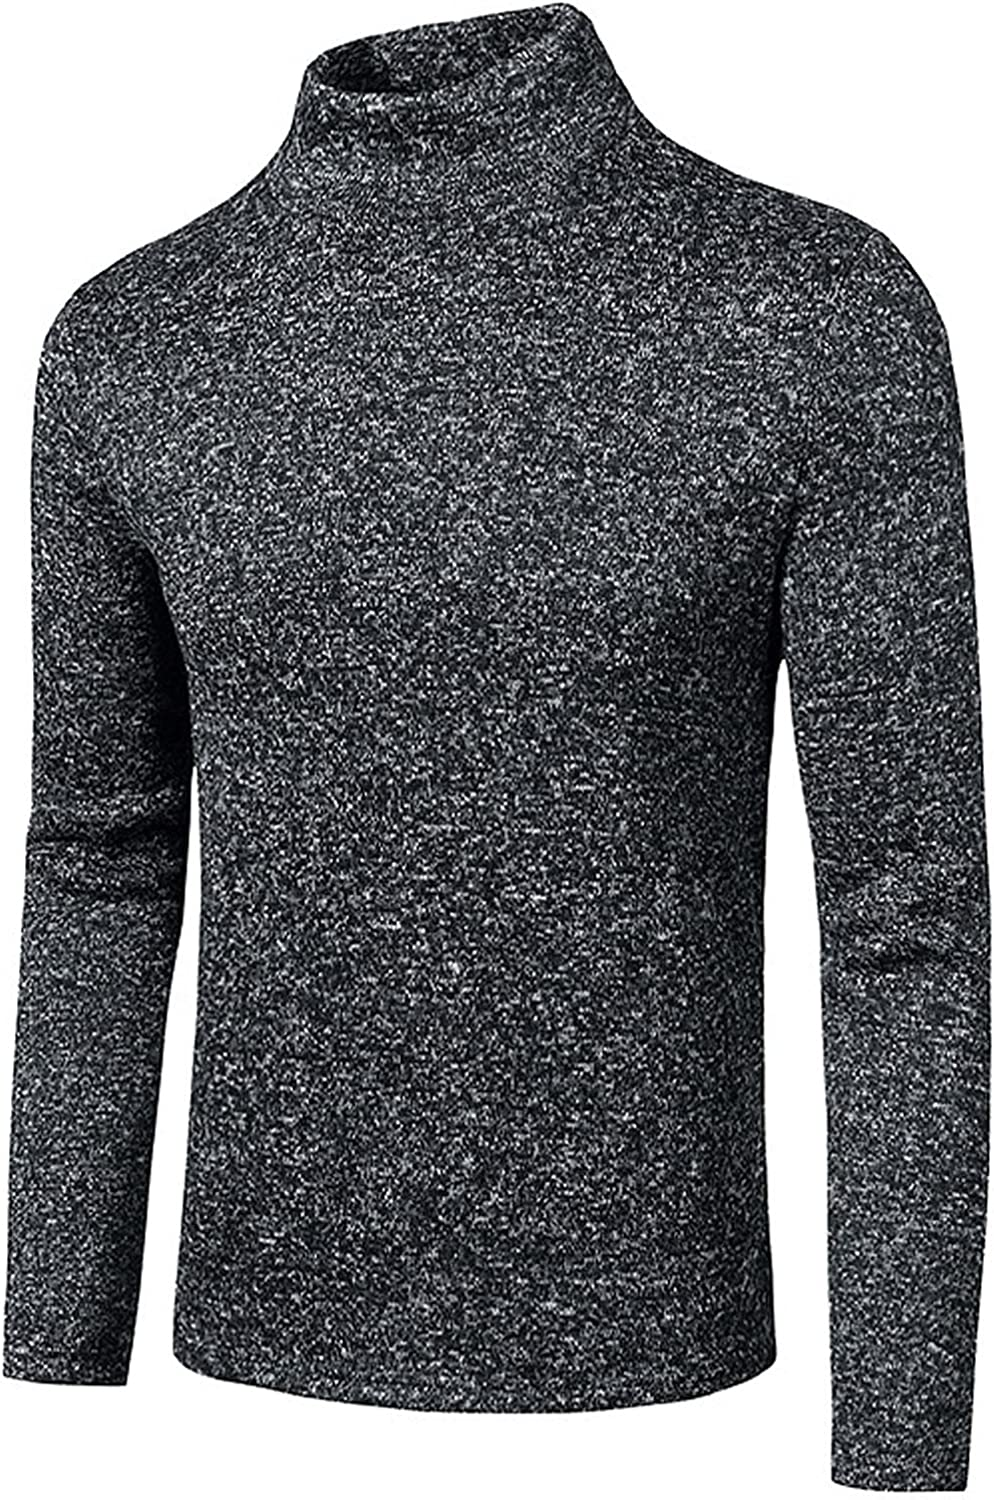 XXBR Flat Knitted Mock Neck Pullover for Mens, 2021 Fall Slim-fit Warm Casual Tops Solid Color Fashion Fleece Sweater